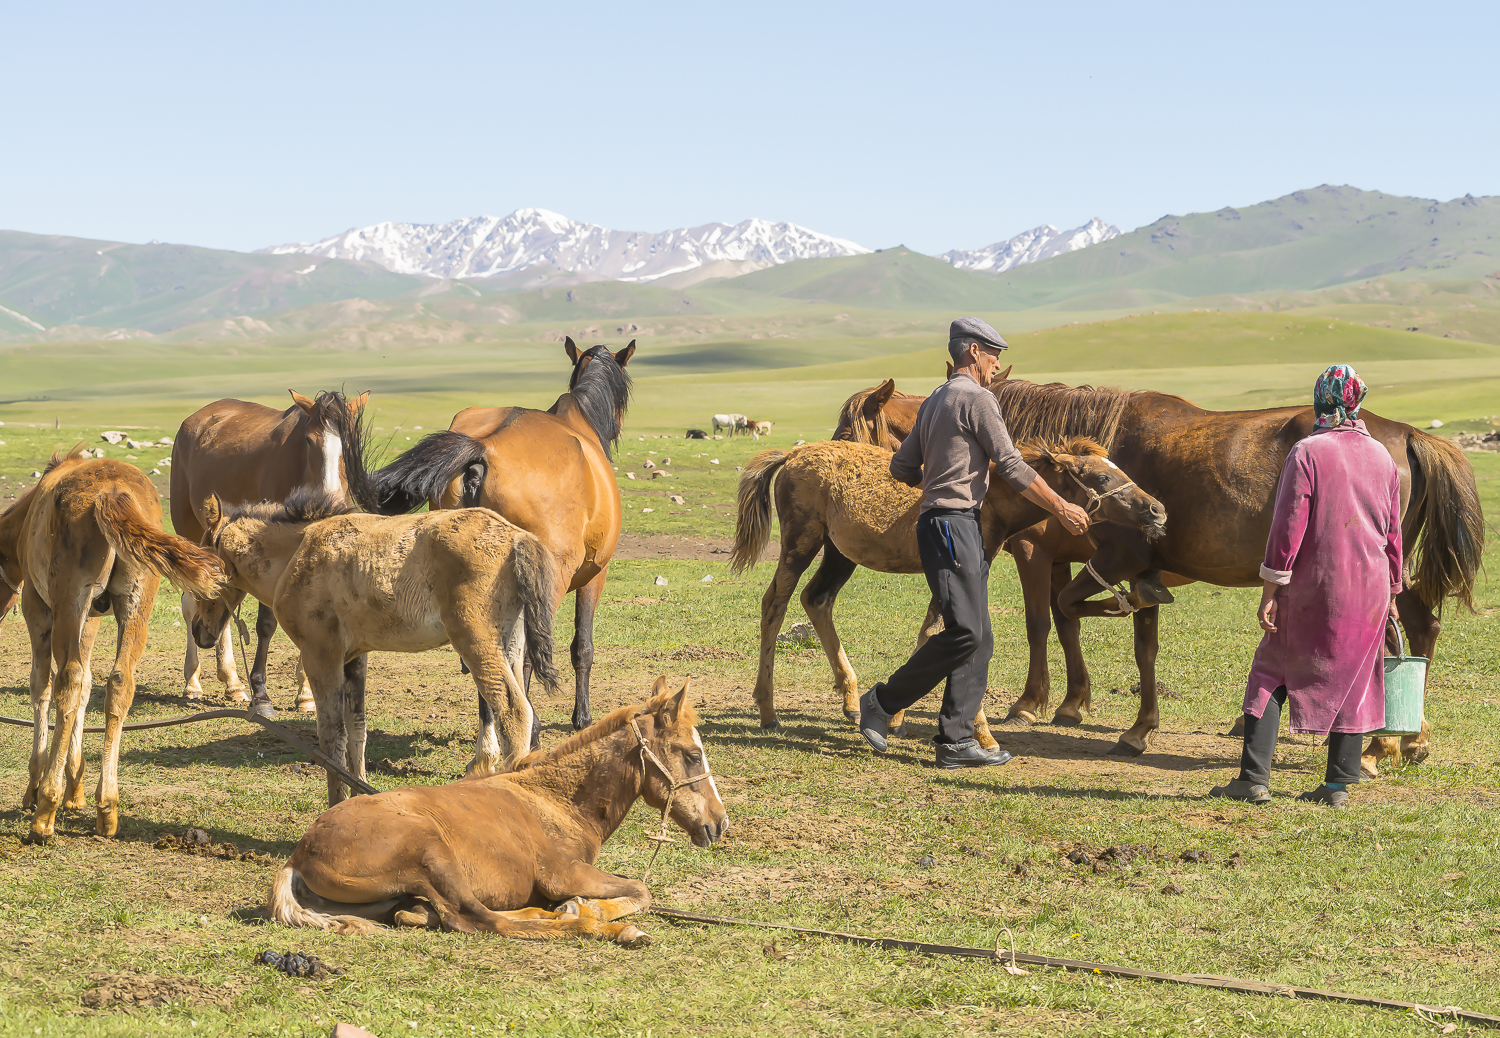 jo-kearney-photography-video-kyrgyzstan-nomads-milking-mares-couple.jpg